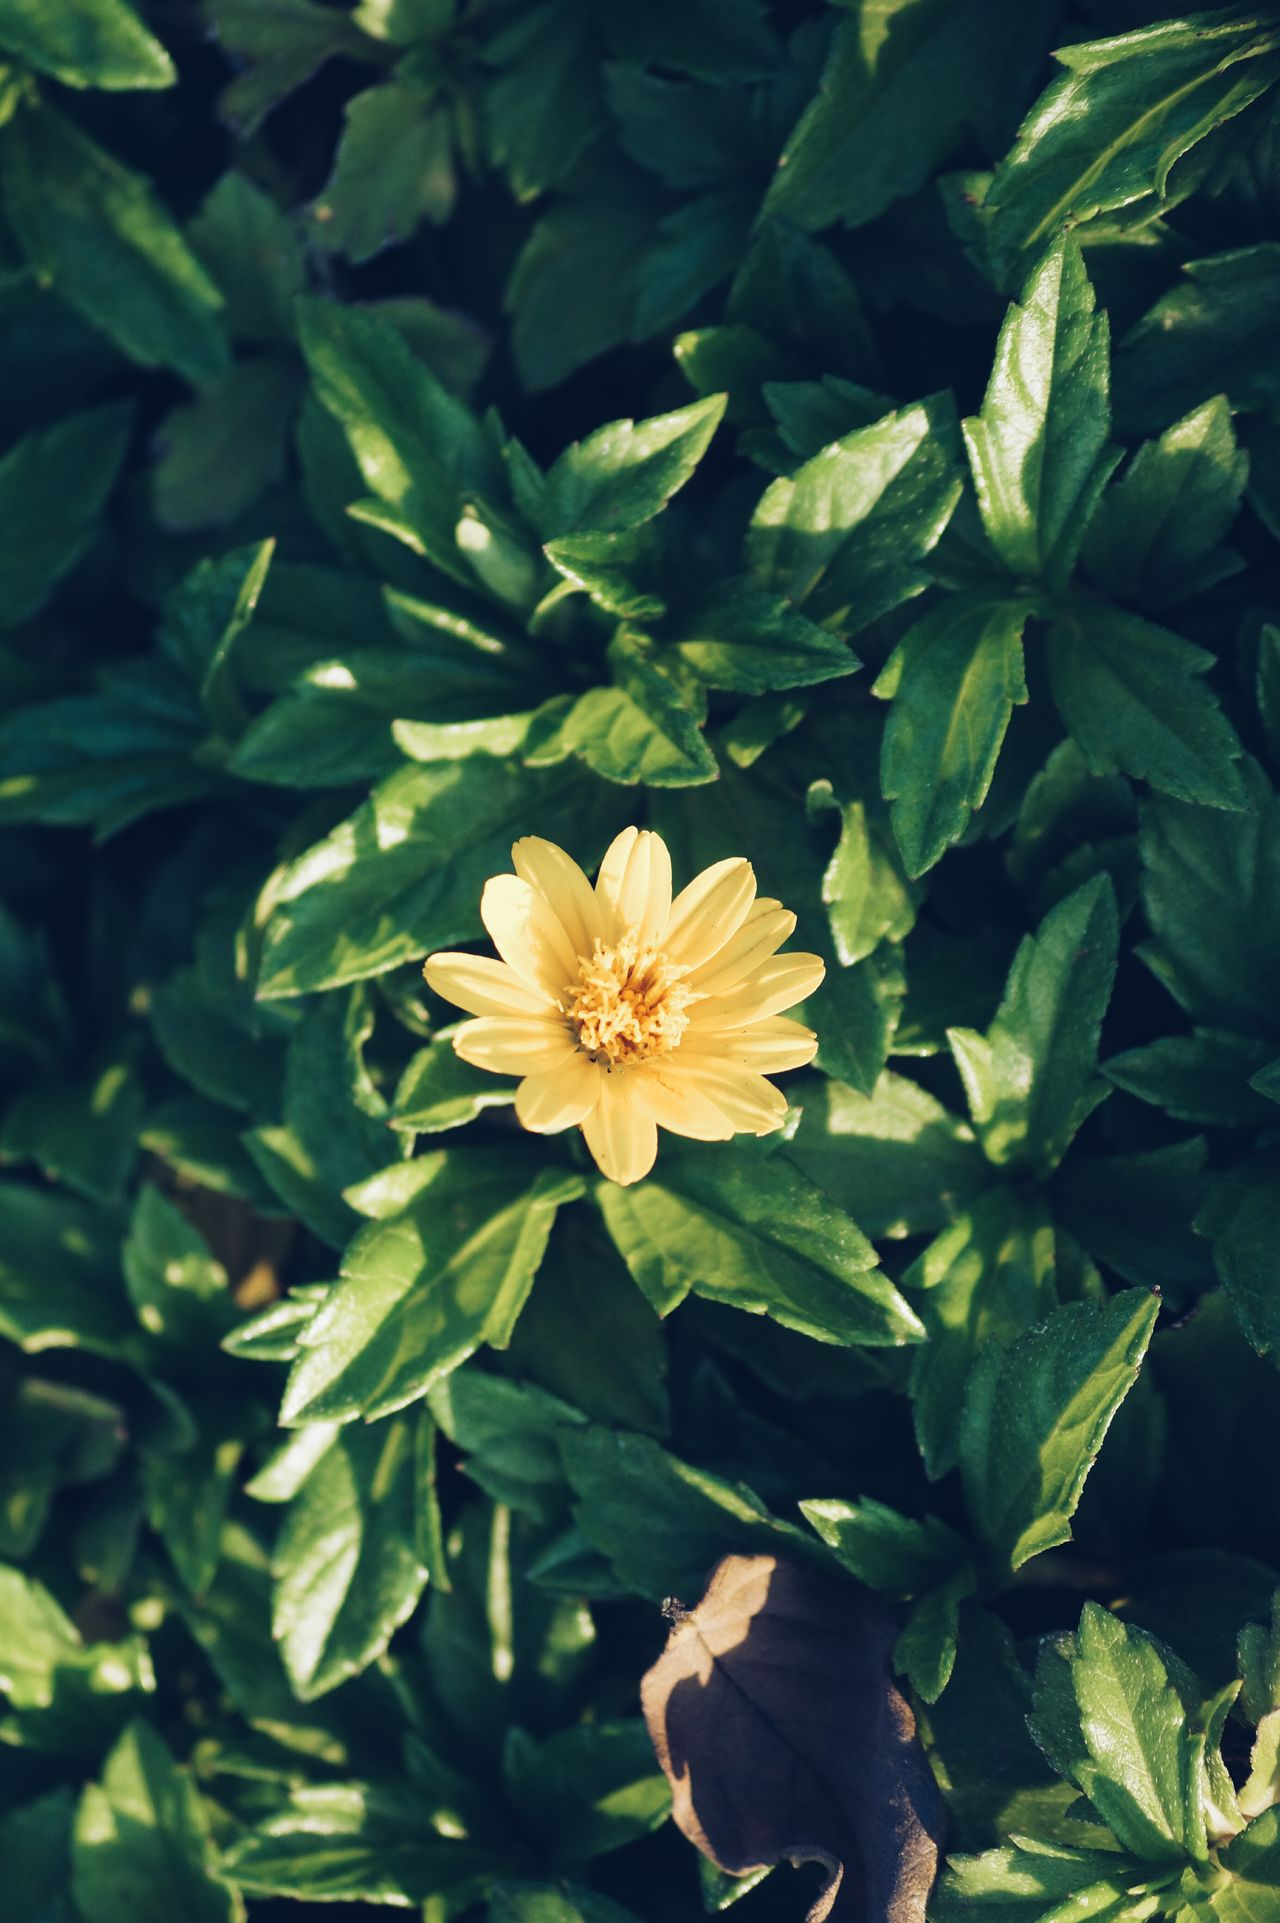 Flower Nature Leaf Beauty In Nature Growth Plant Petal Freshness Flower Head Fragility Blooming Outdoors No People Close-up Day